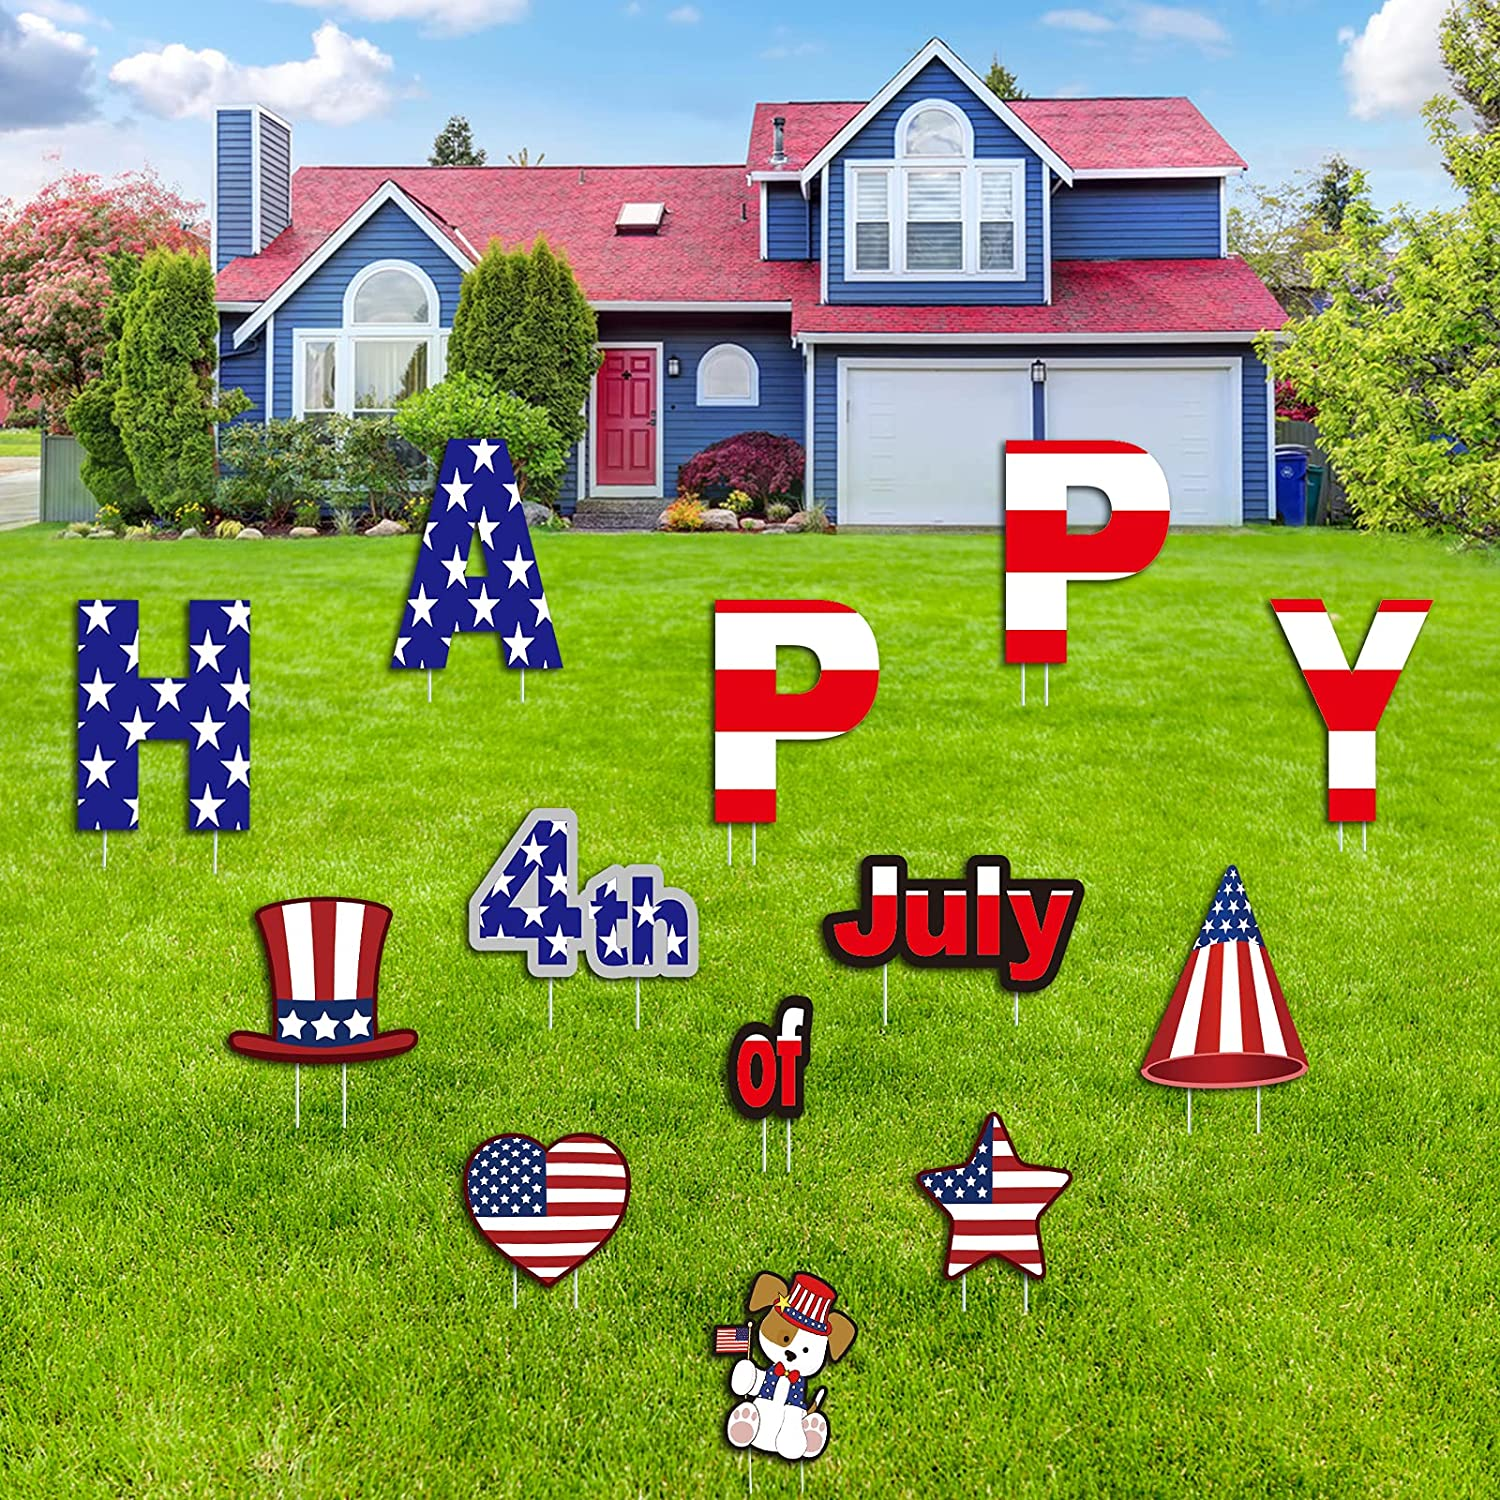 FilmHoo 13 PCS 4th of July Decor - Independence Day Yard Signs for Home/Outdoor Lawn Decorations with Plastic Stakes - Memorial Day Labor Day USA Patriotic Party Yard Signs